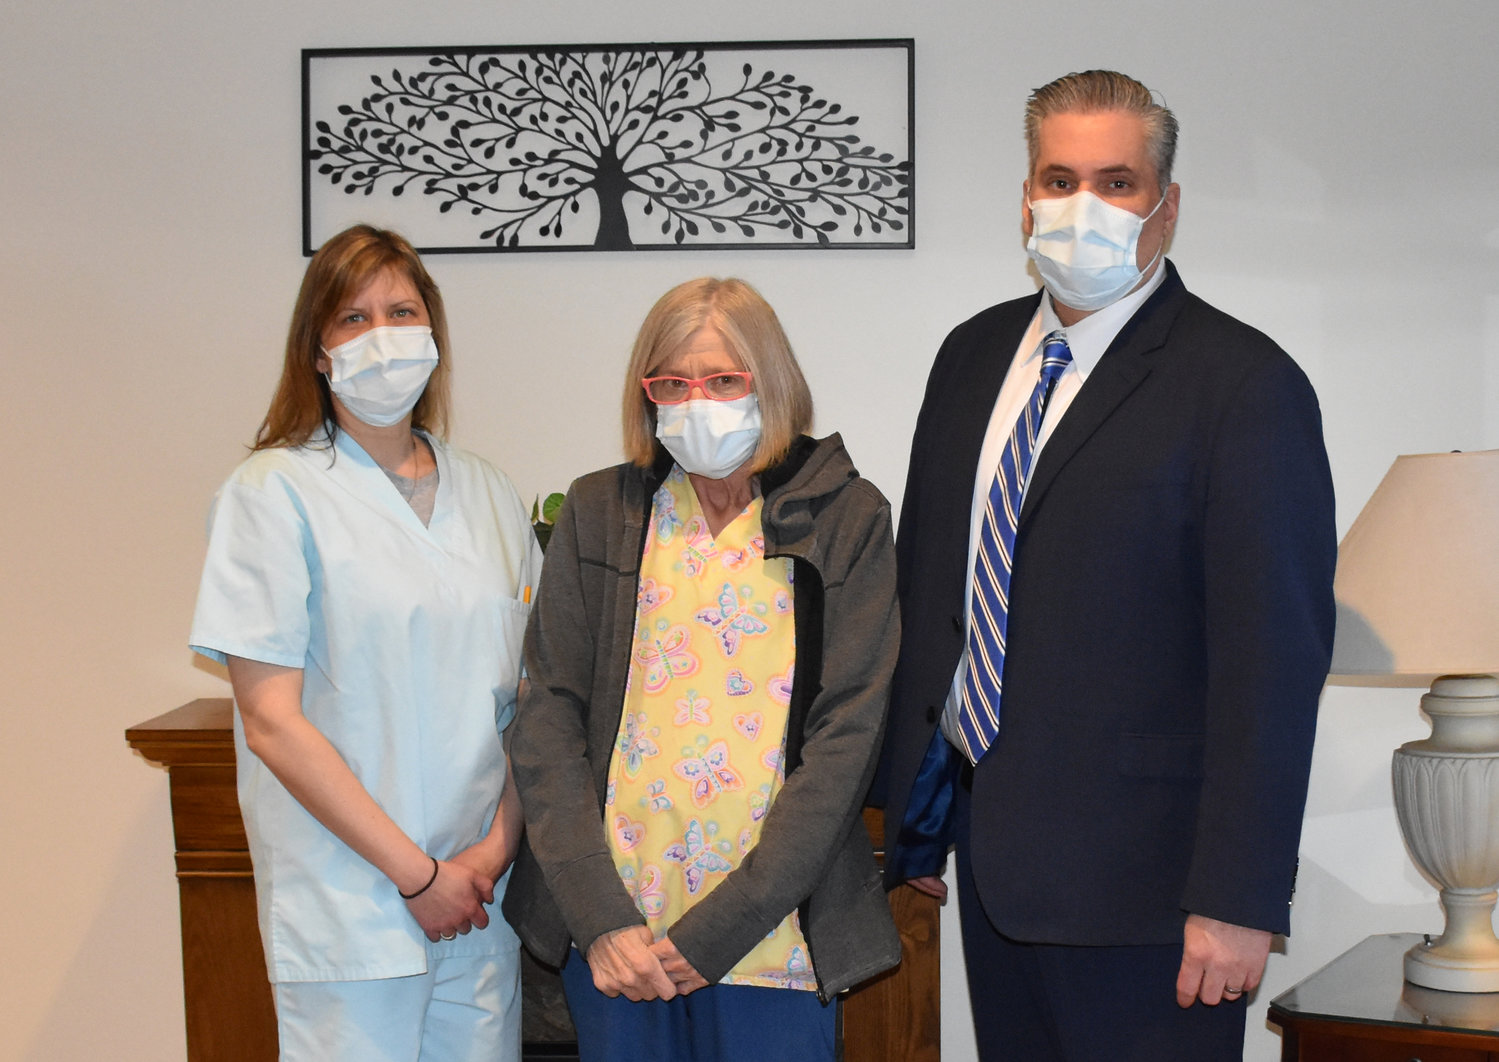 Wayne Woodlands Manor Employee of the Year 2020 Kathy Piorkowski, RN, is flanked by director of nursing Kelly Miller, RN, left, and Wayne Woodlands Administrator Michael Freund.